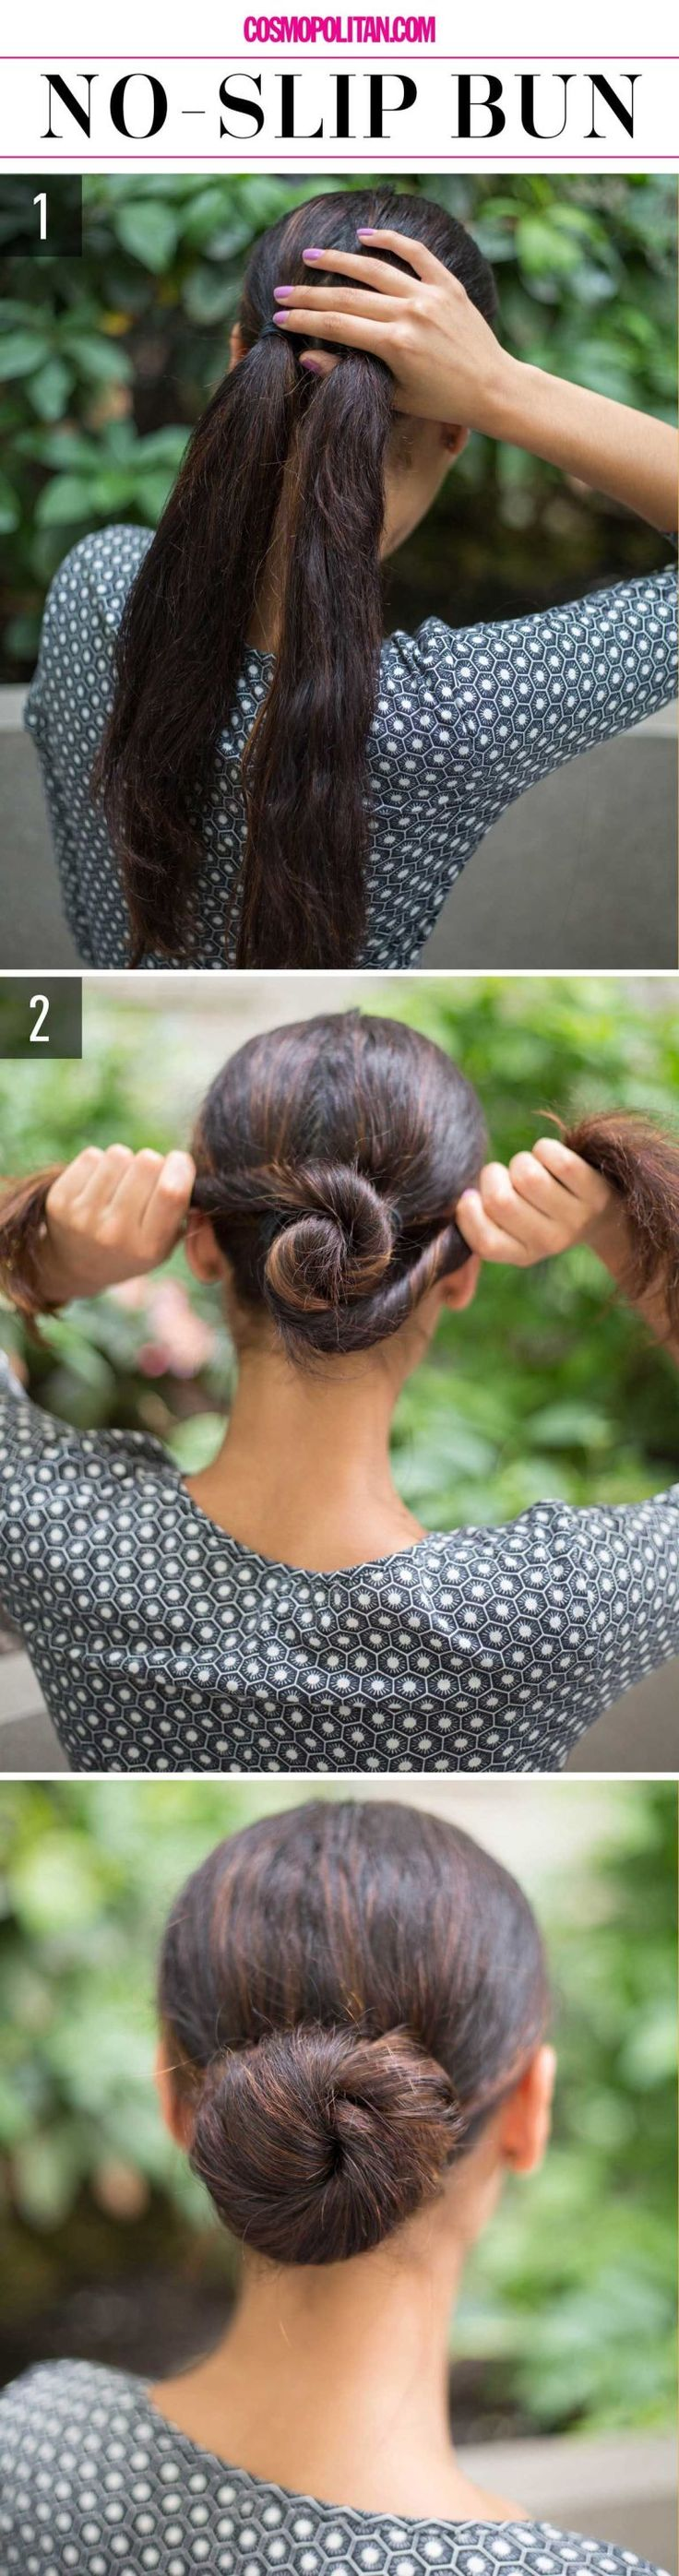 Best Haircuts For Runners : Best ideas about running hairstyles on hair